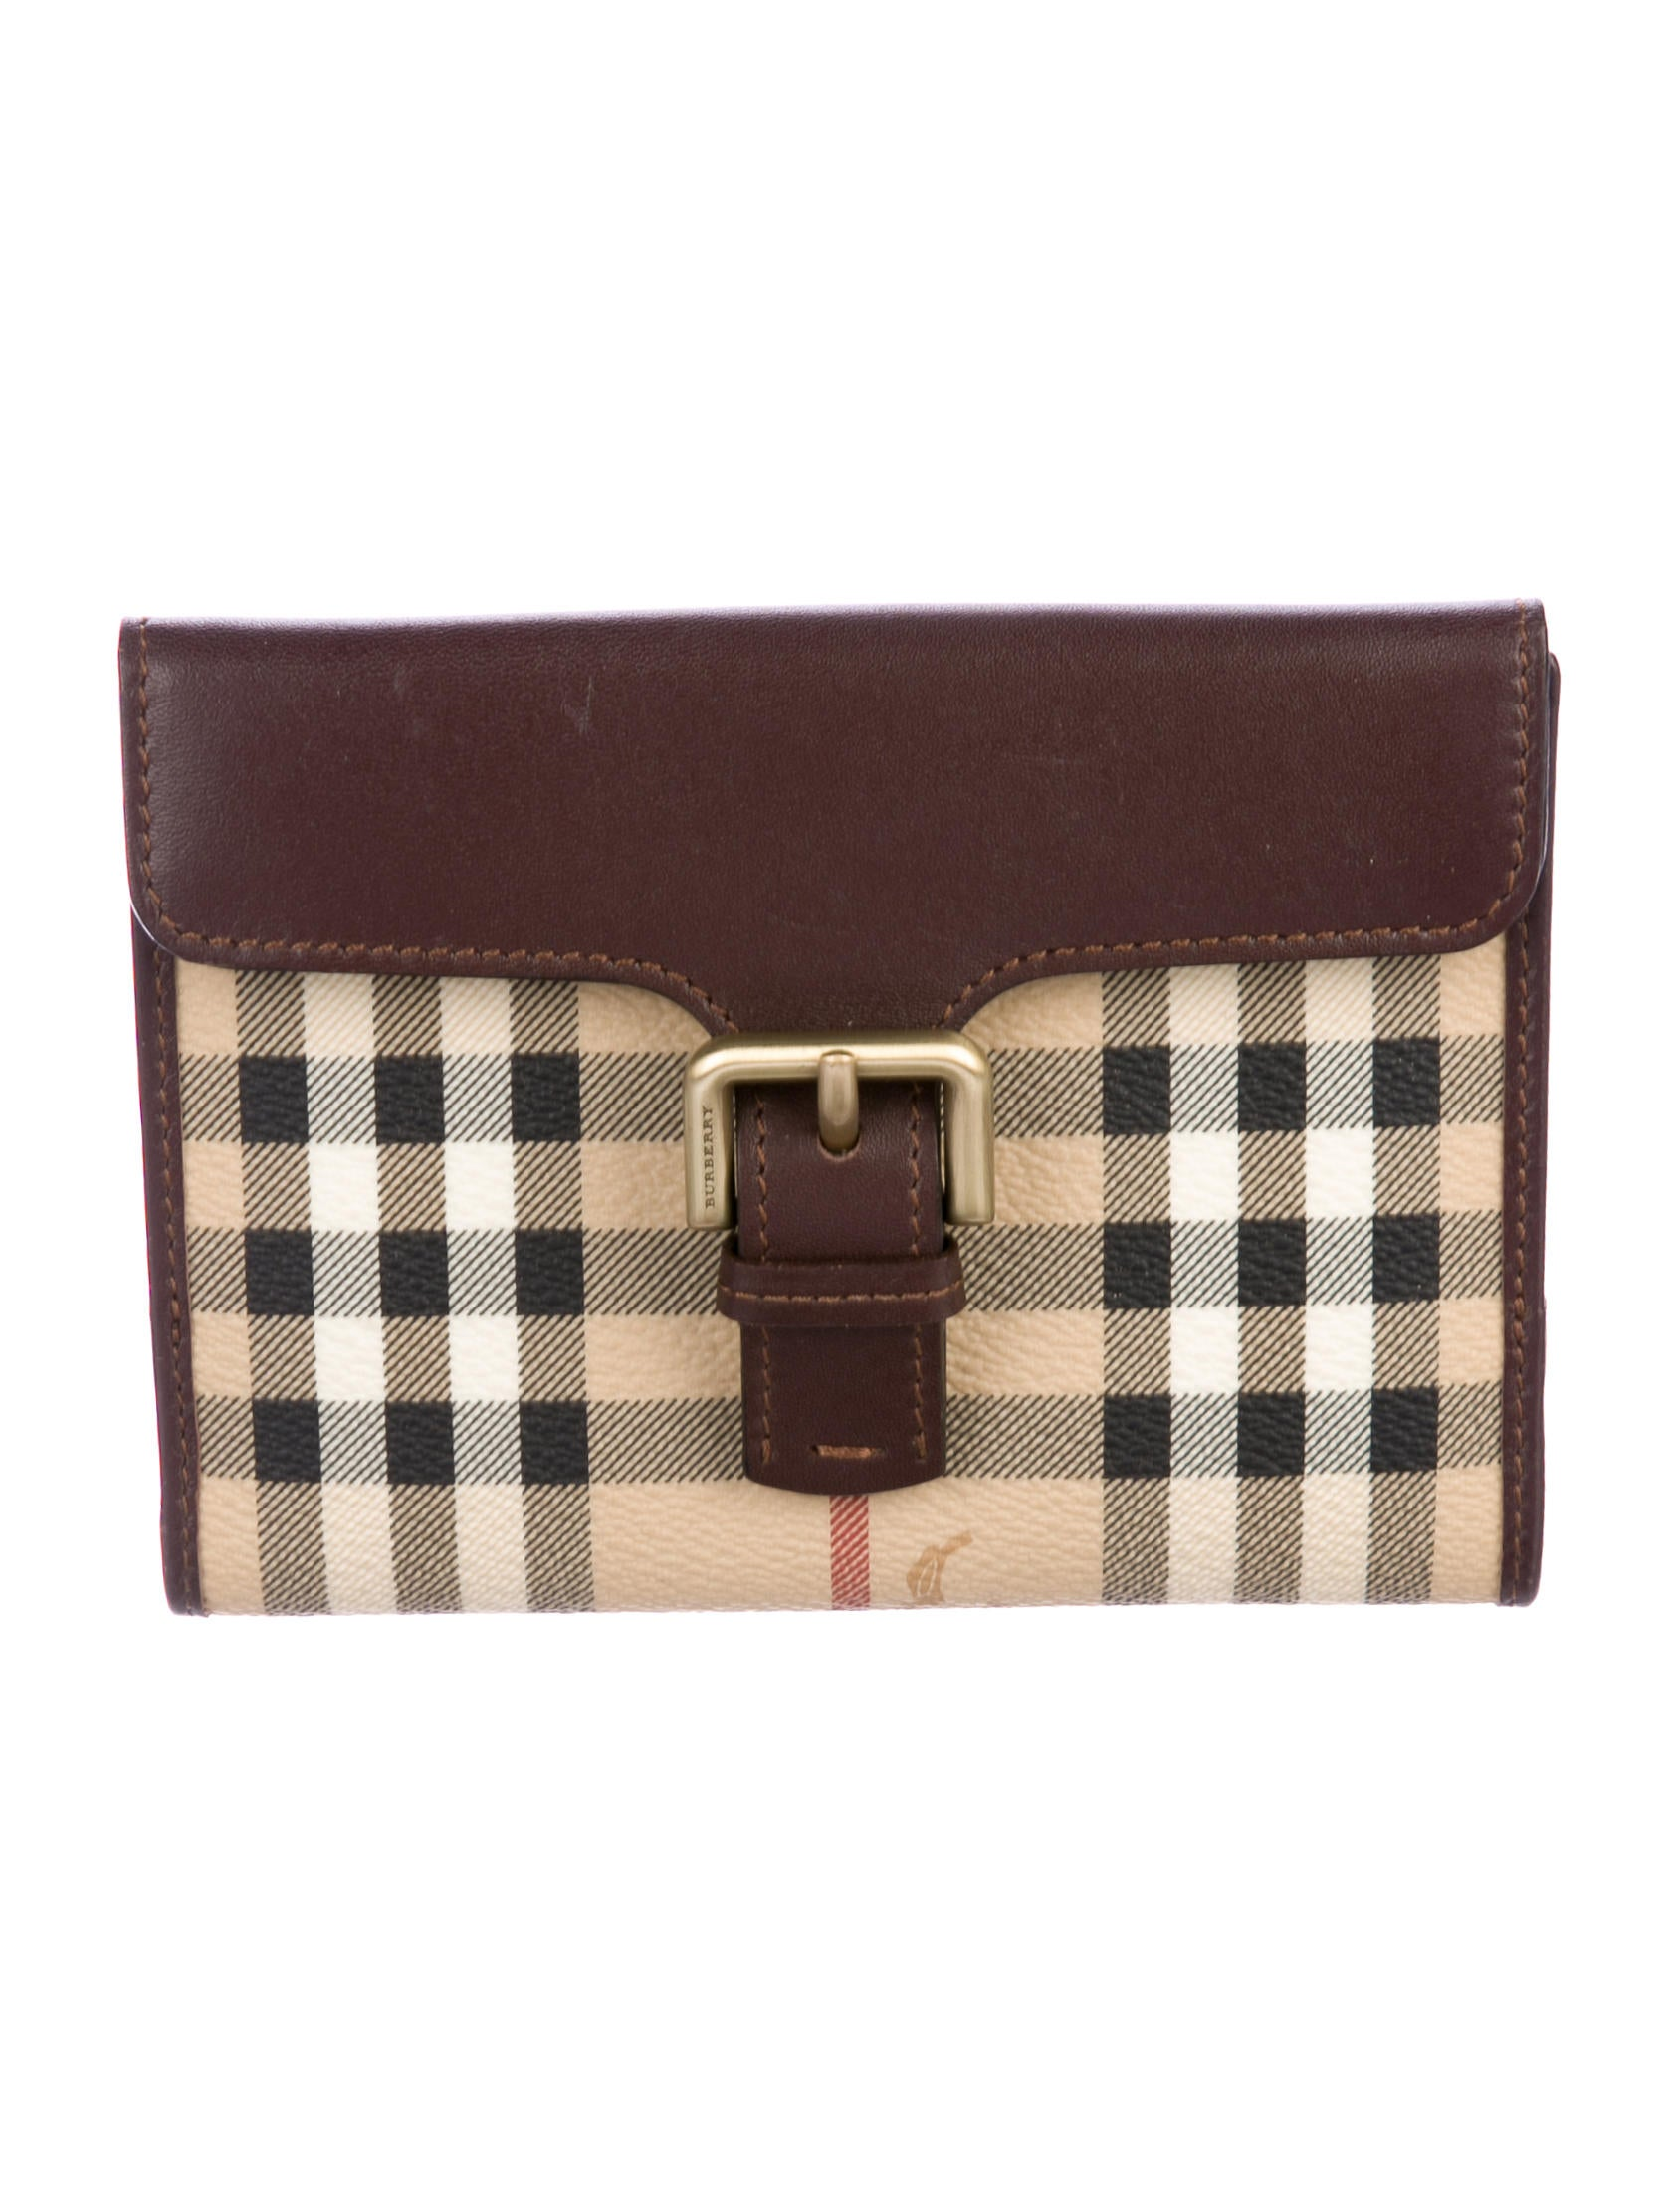 33de70f64725 Burberry London Haymarket Check Compact Wallet - Accessories ...